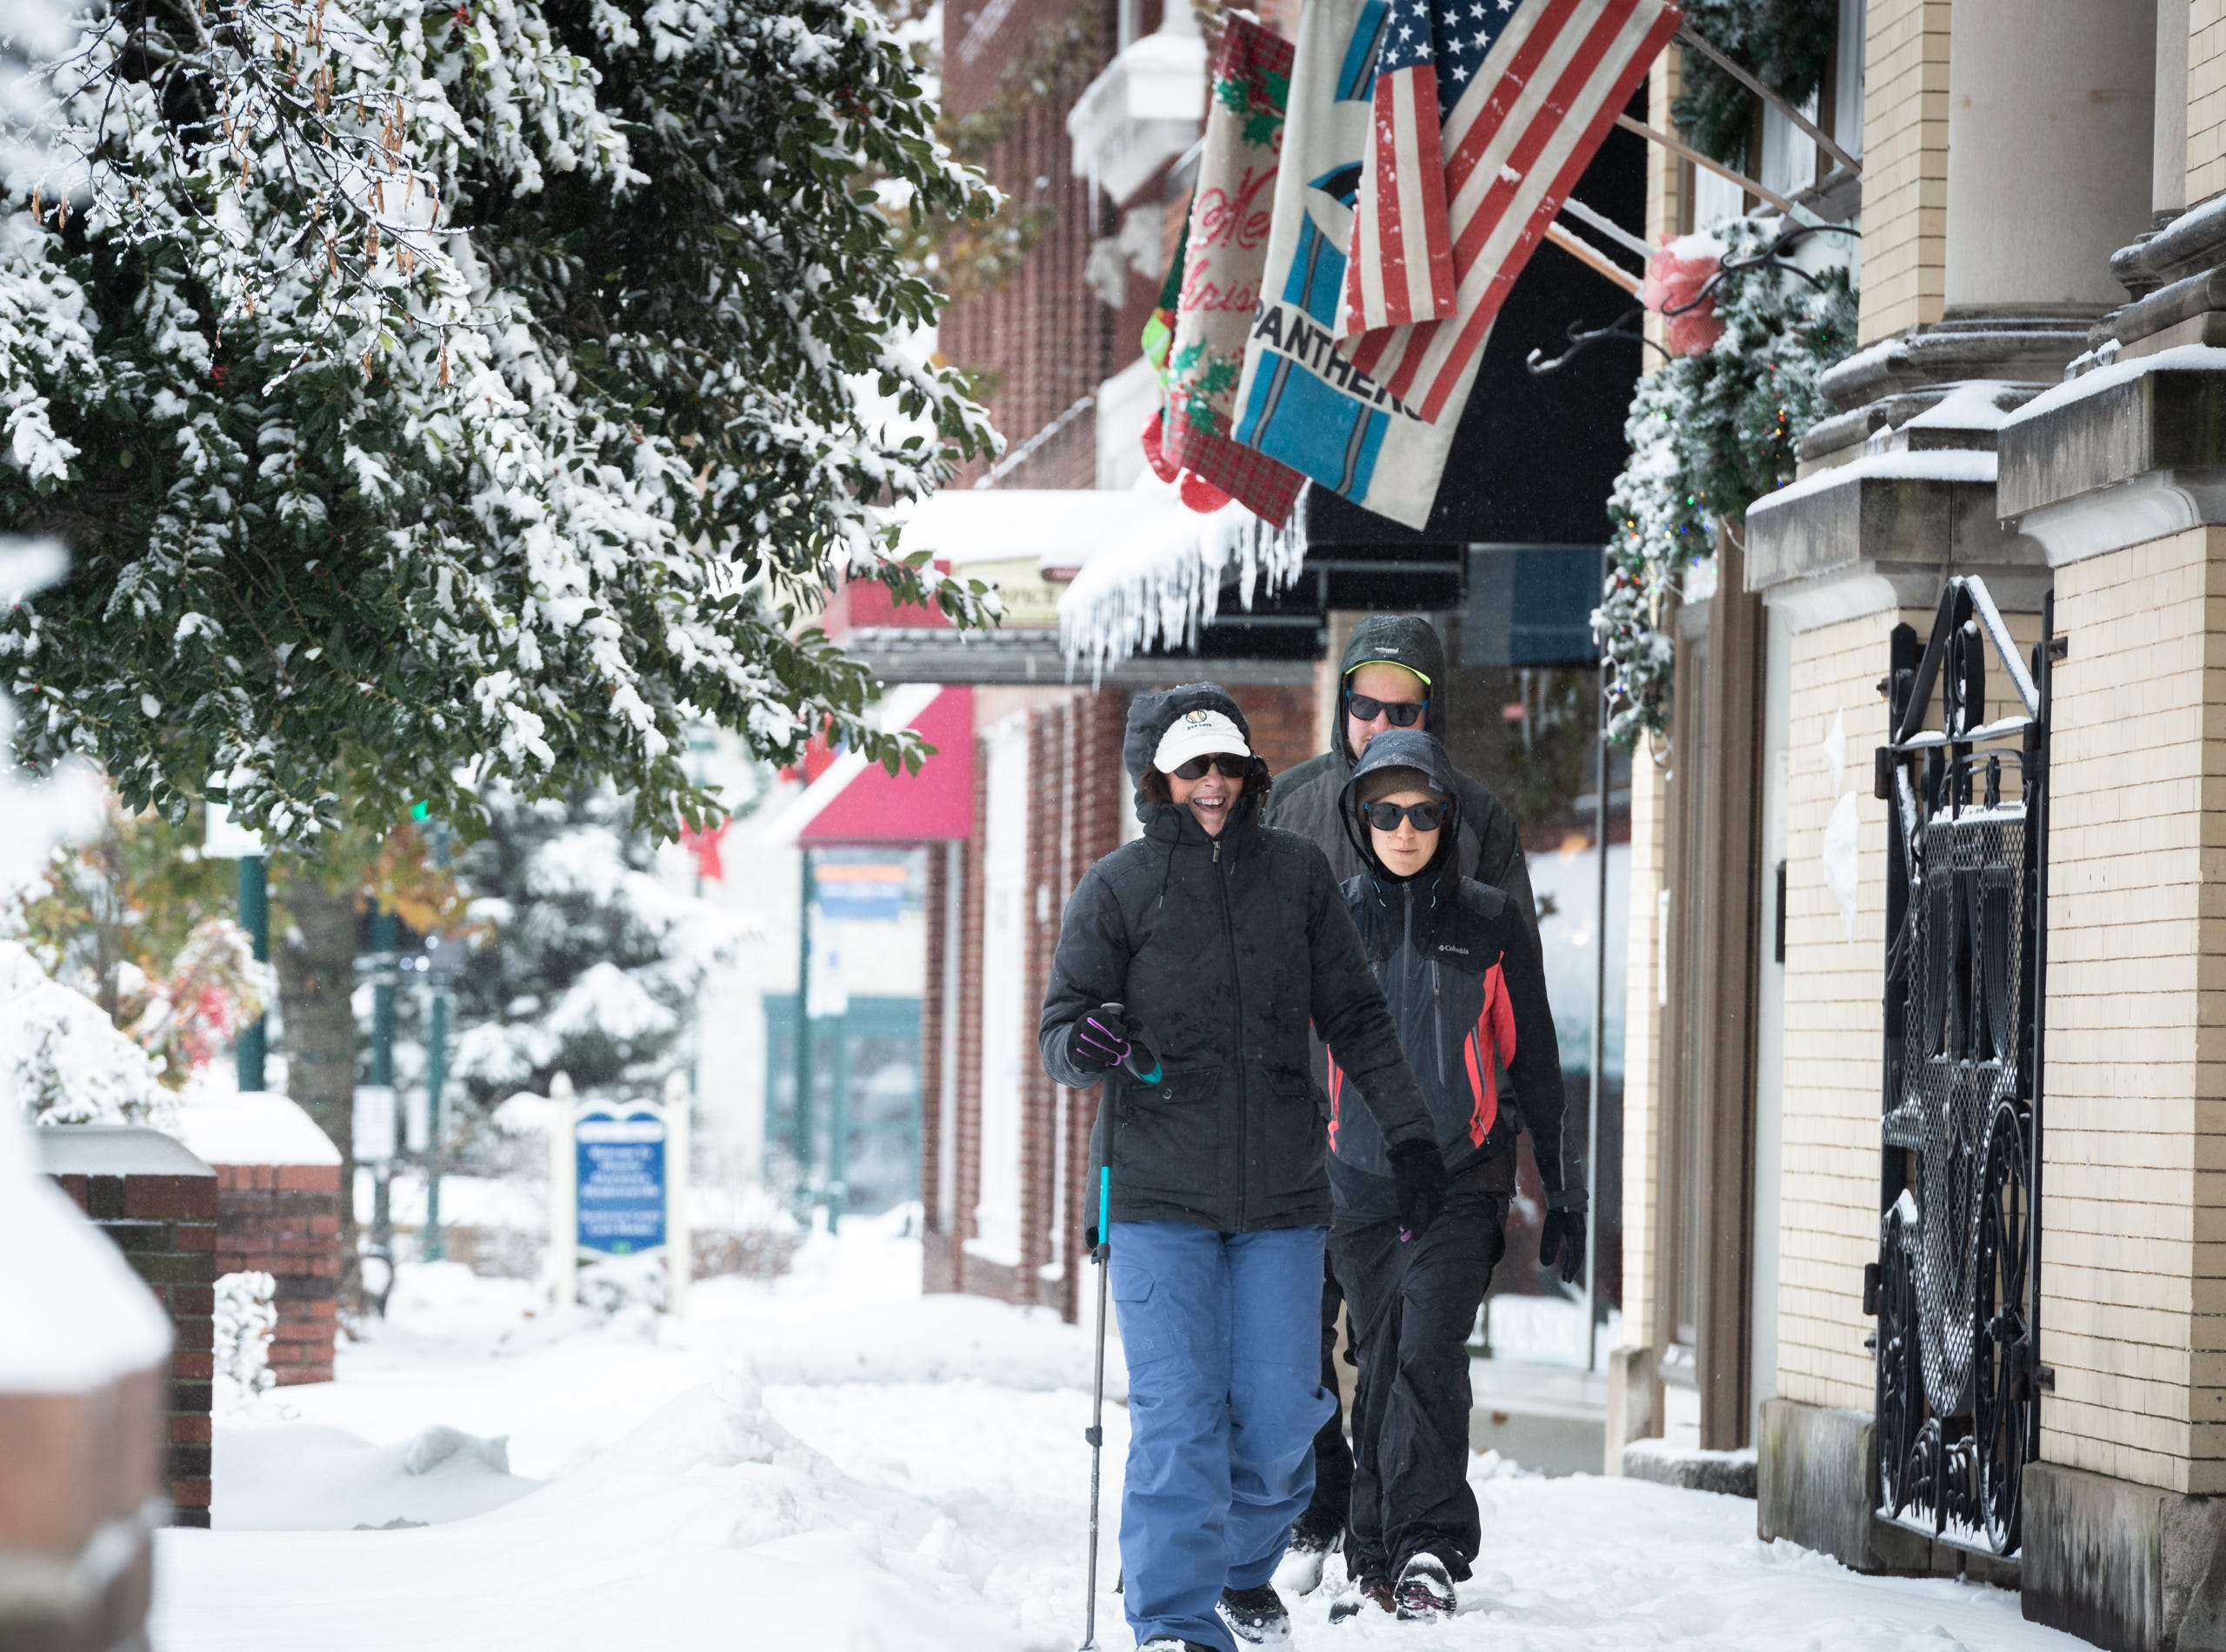 Elaine Anderson, Alana Anderson and Chad Anderson, all all down Main Street in Hendersonville after a night of heavy snowfall, accumulating 10-11 inches Dec. 9, 2018. At 5 p.m there were nearly 9,600 power outages.